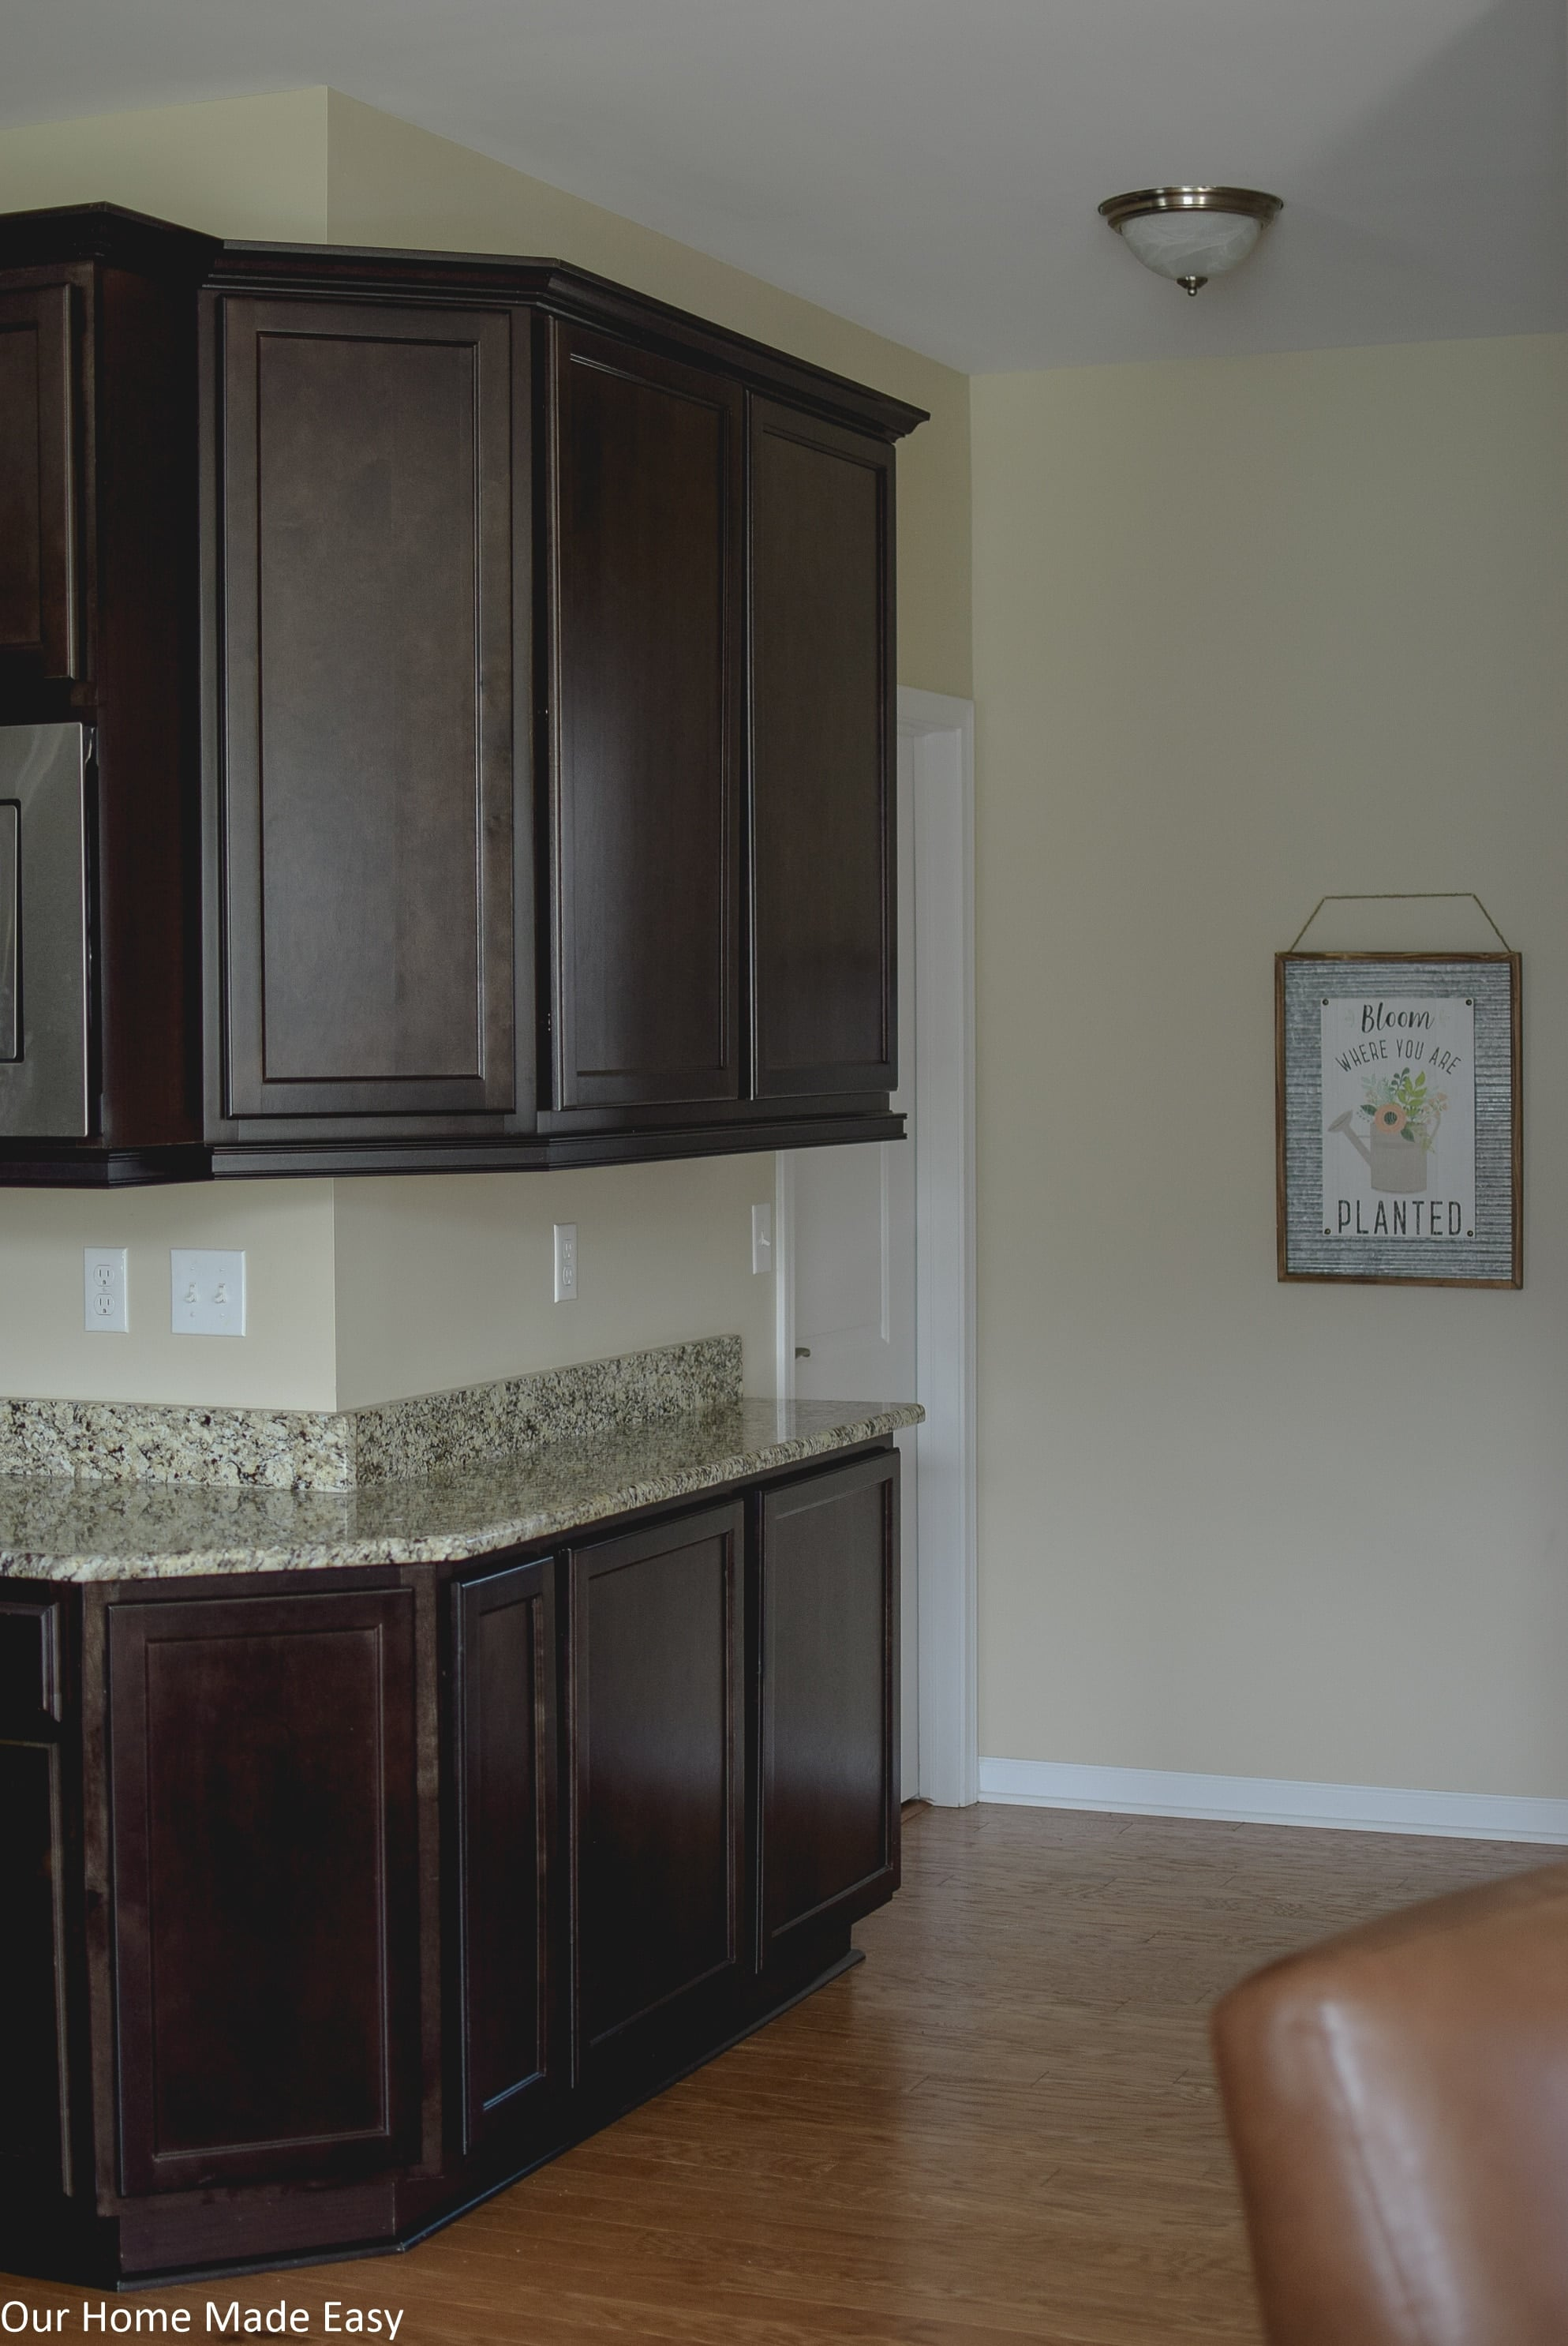 How To Clean The Kitchen Cabinets The Simplest Way To Clean Kitchen Cabinets Our Home Made